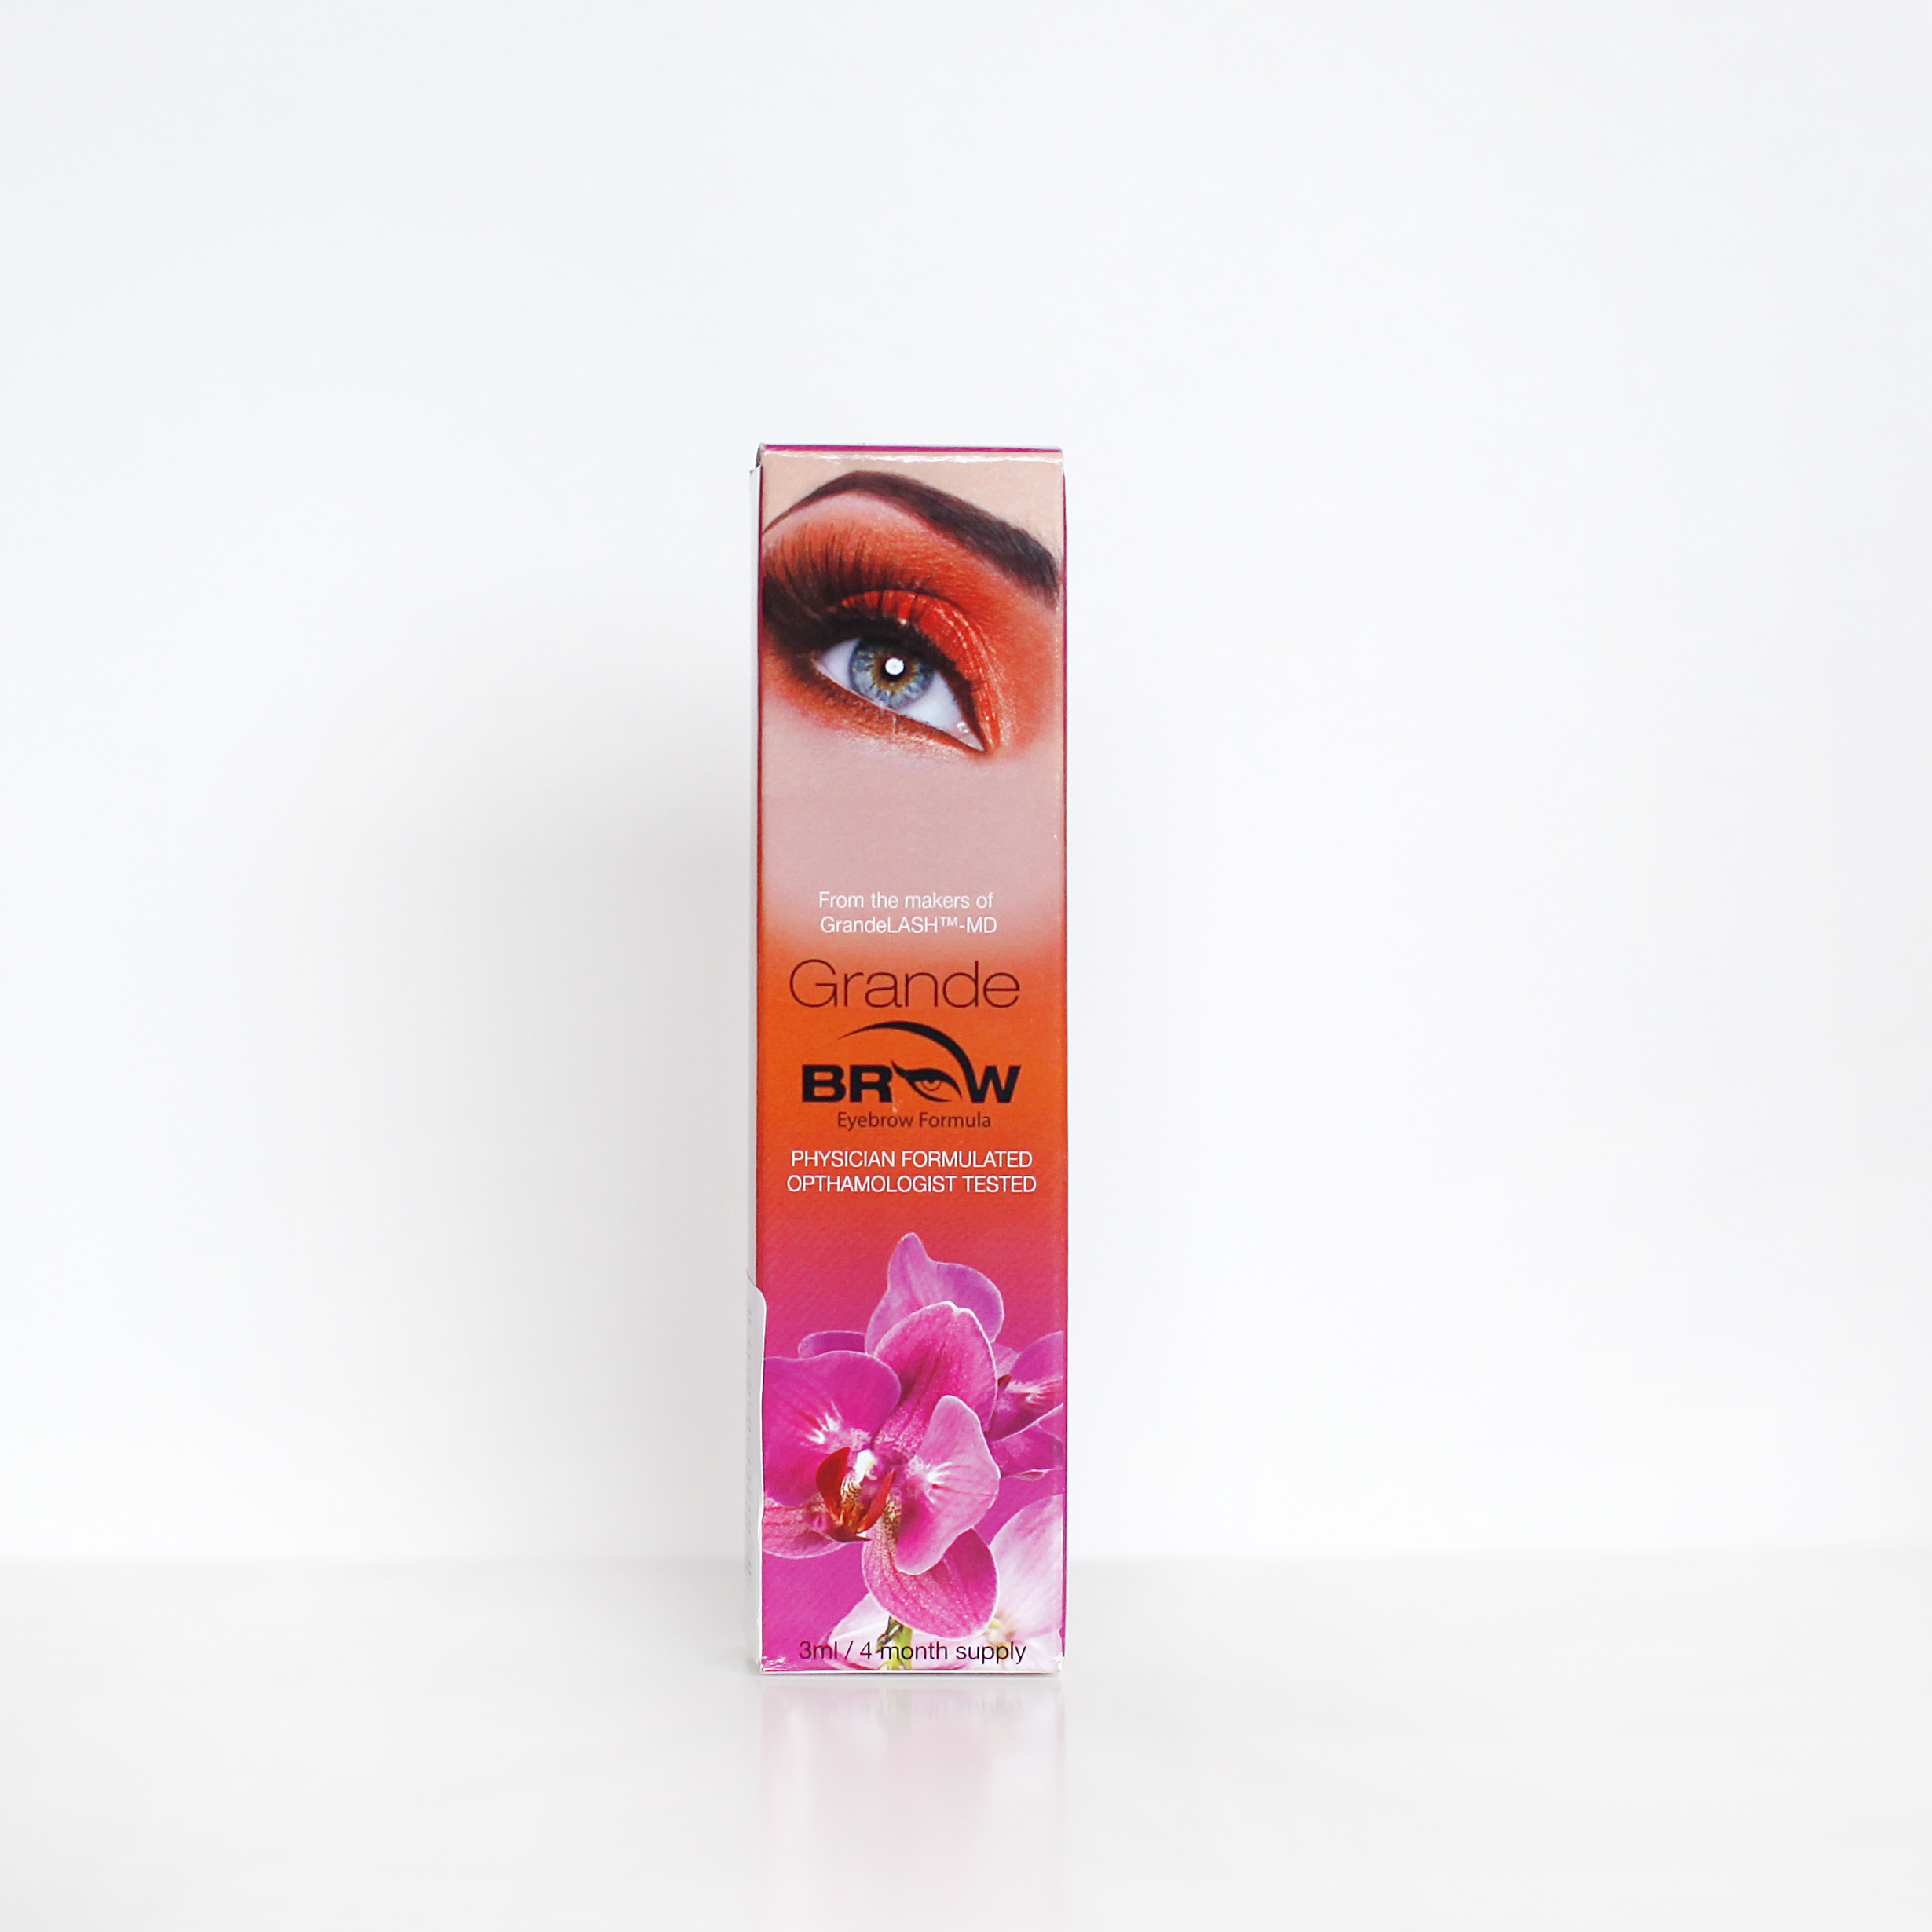 GrandeBROW Eyebrow Serum for Fuller Bolder Brows